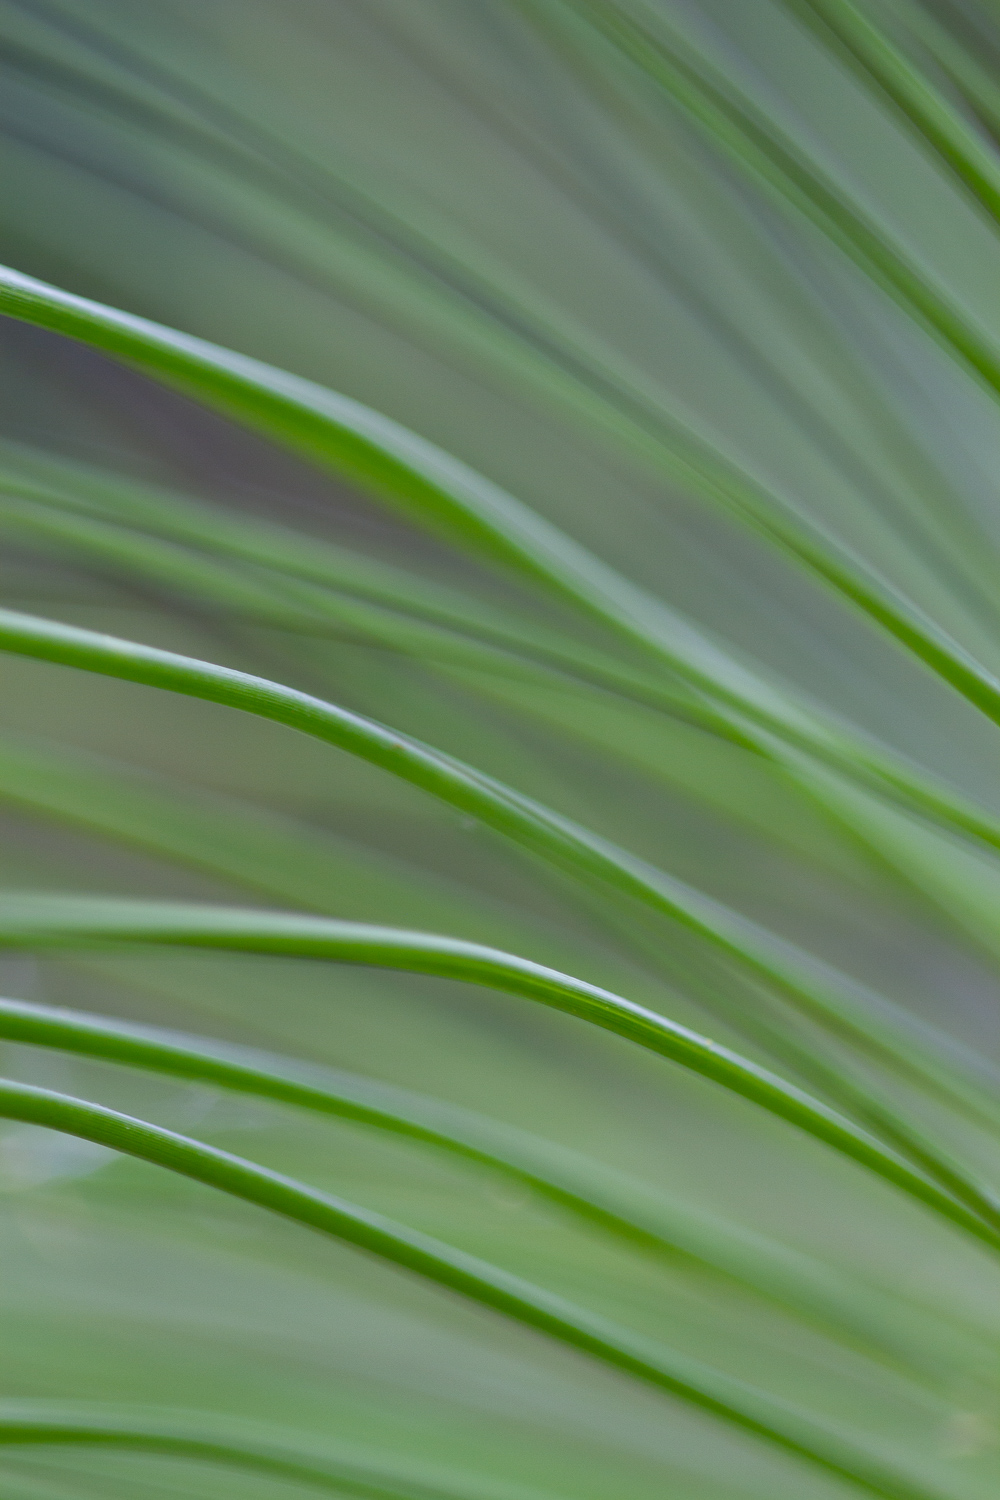 abstract of a leaf - 5 Ways to Make Extraordinary Photographs of Ordinary Subjects